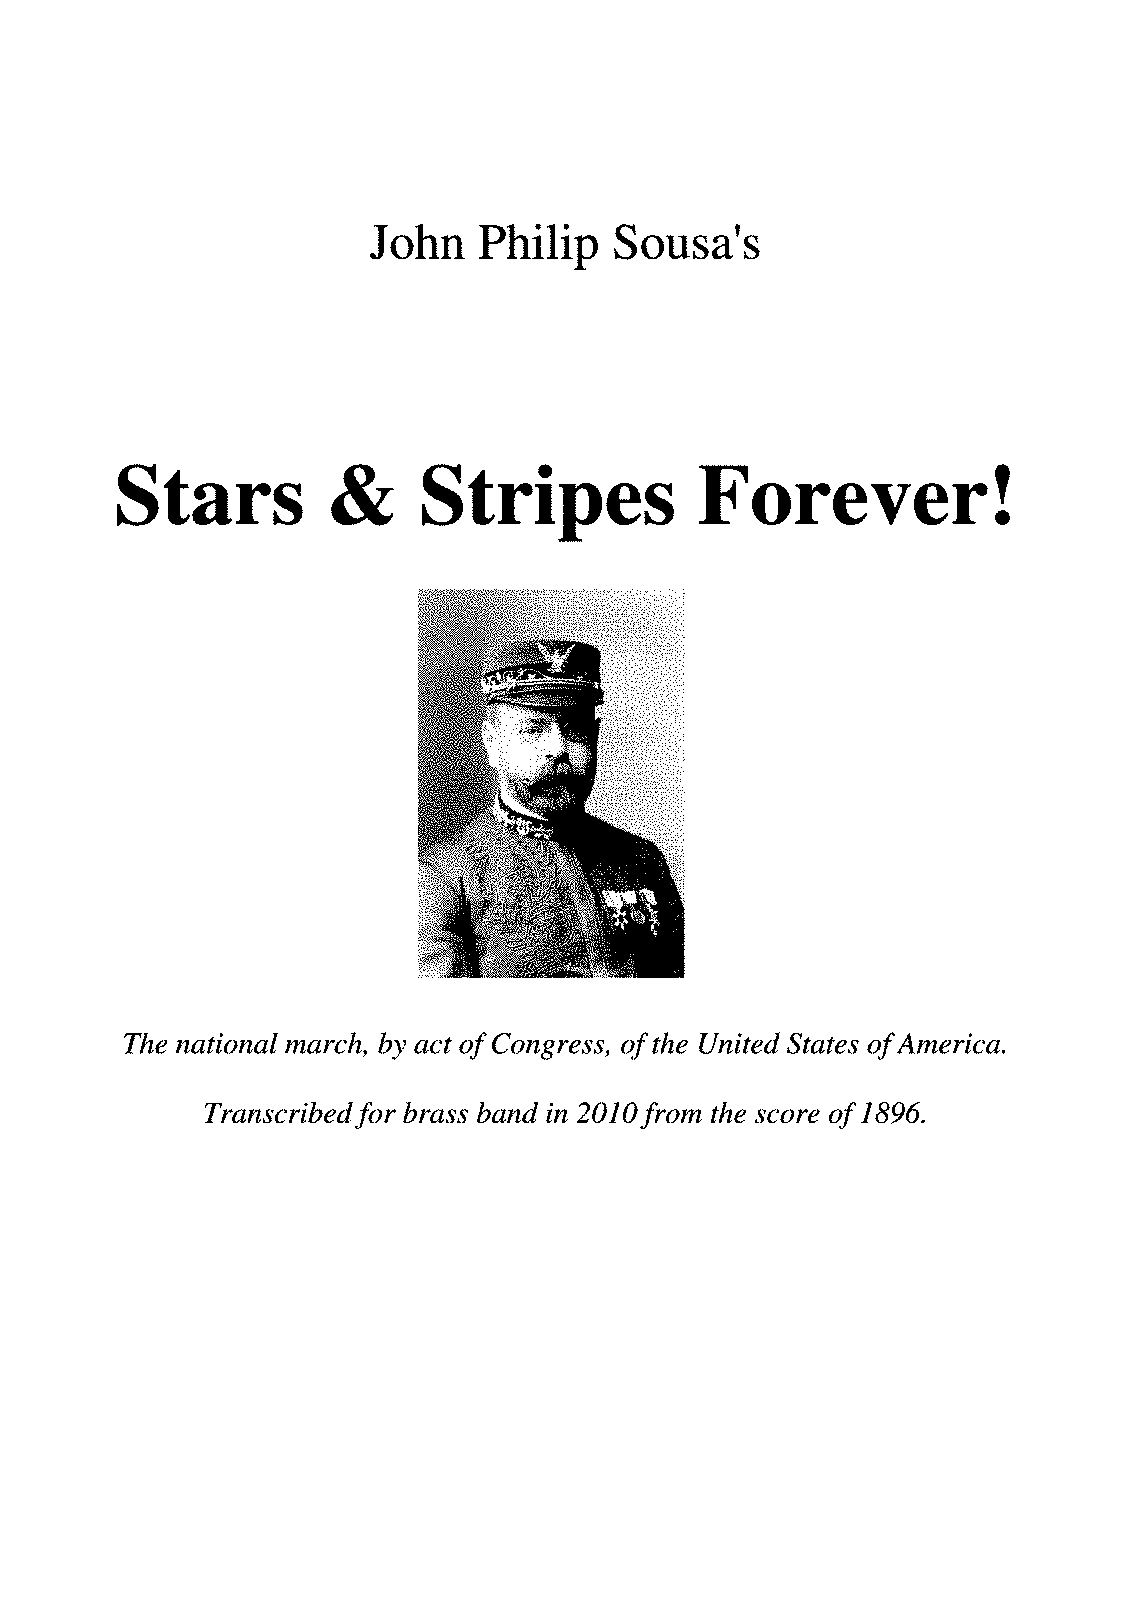 PMLP03235-Stars Stripes Forever for brass band 2010.pdf